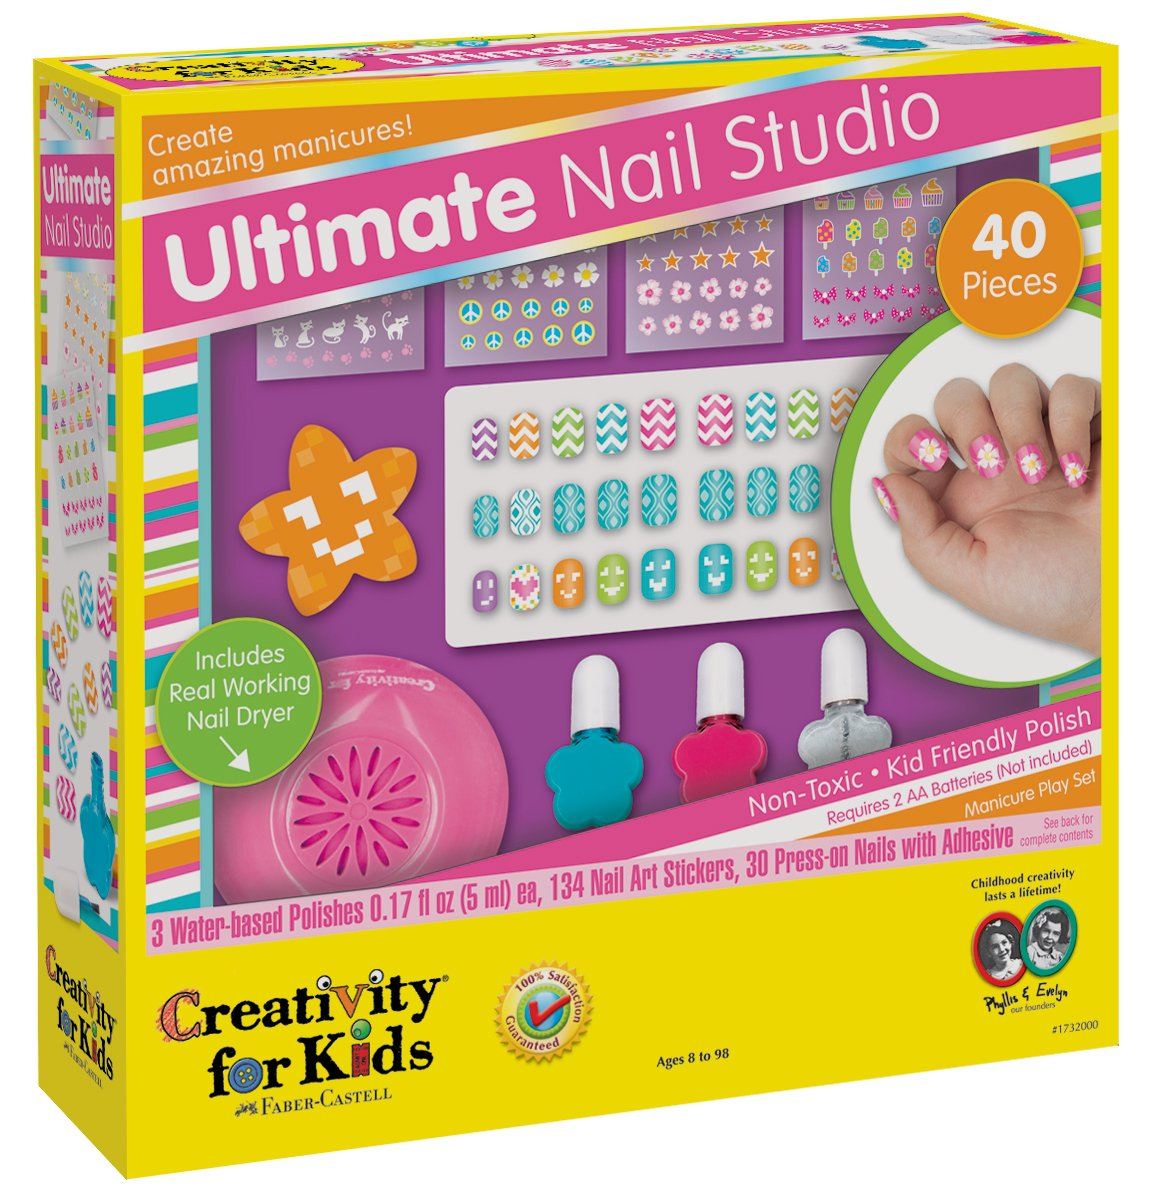 Amazon.com: Creativity for Kids Ultimate Nail Studio Manicure Play ...